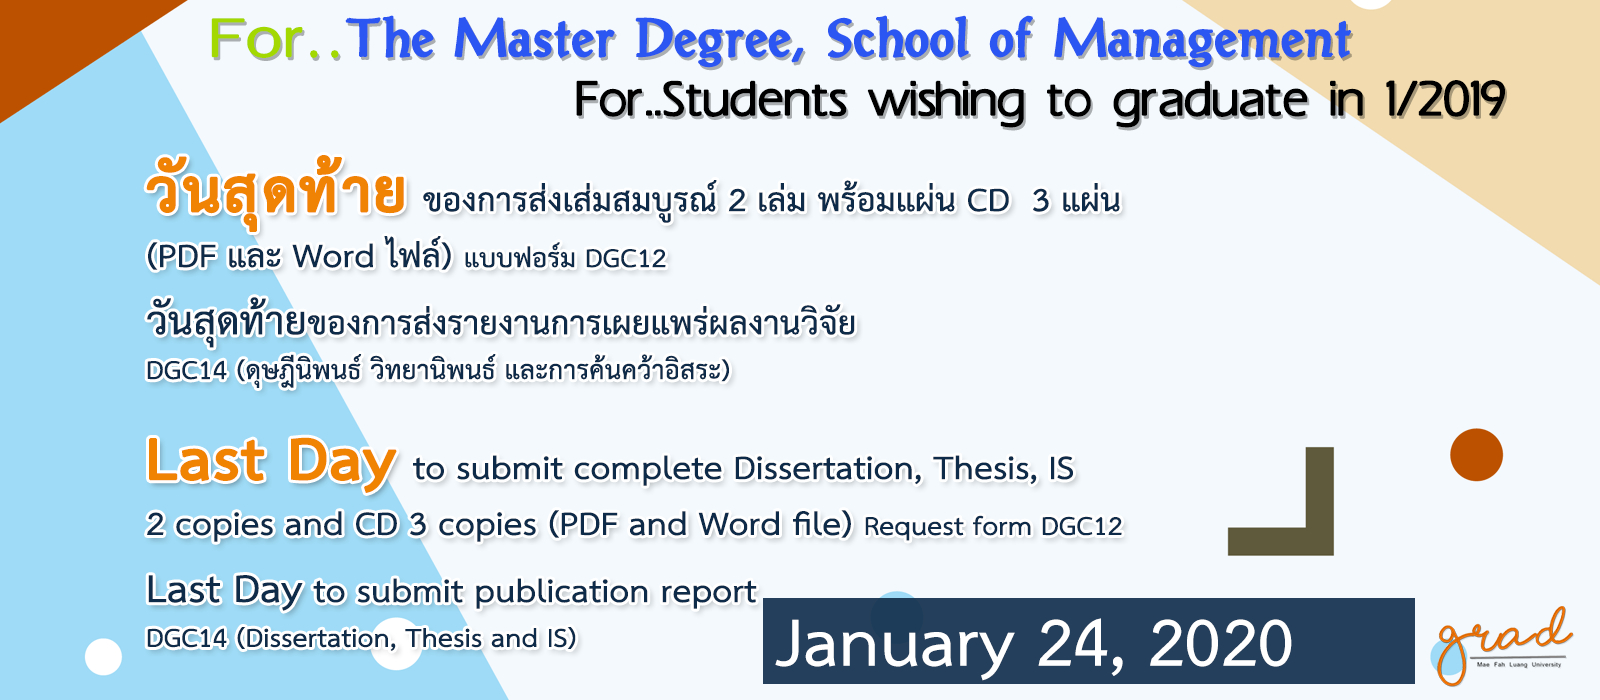 Last day to submit complete Thesis 1/2019 (management)